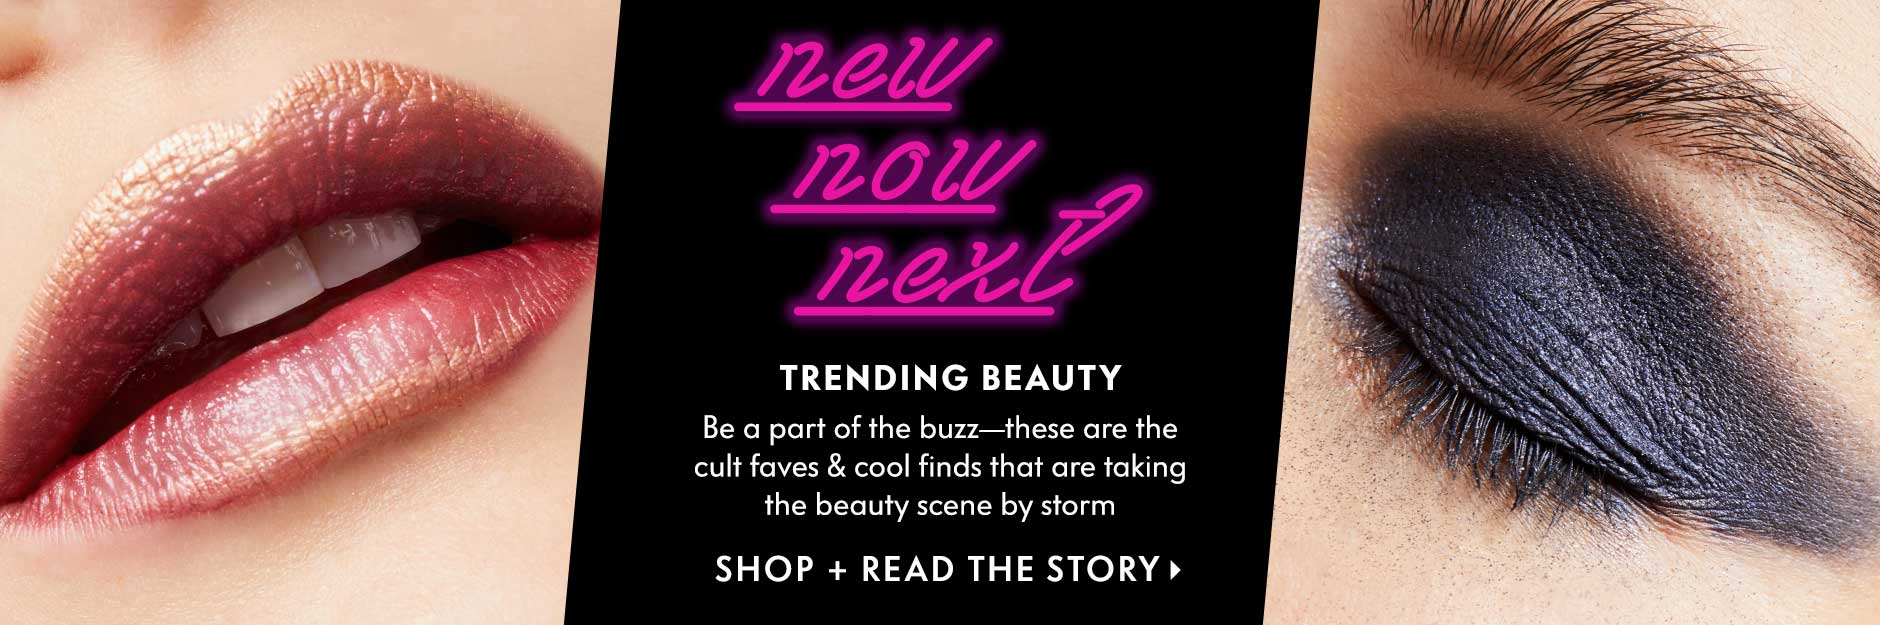 Trending Beauty - New. Now. Next. Be a part of the buzz?these are the cult faves & cool finds that are taking the beauty scene by storm